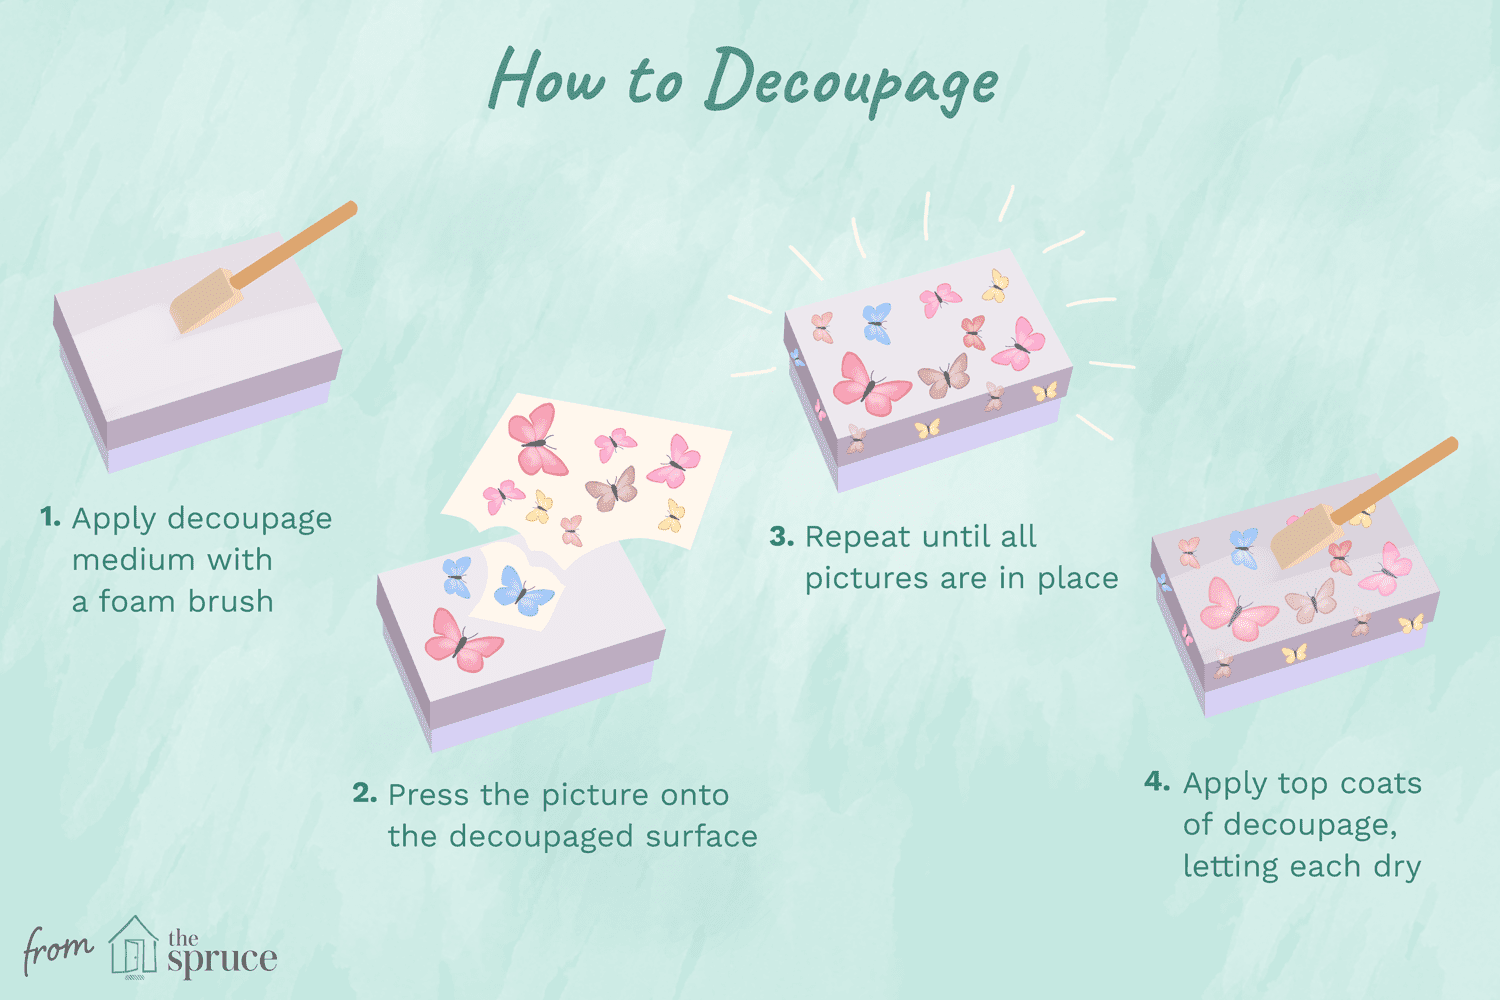 How to Decoupage: Tips, Tricks, and Advice